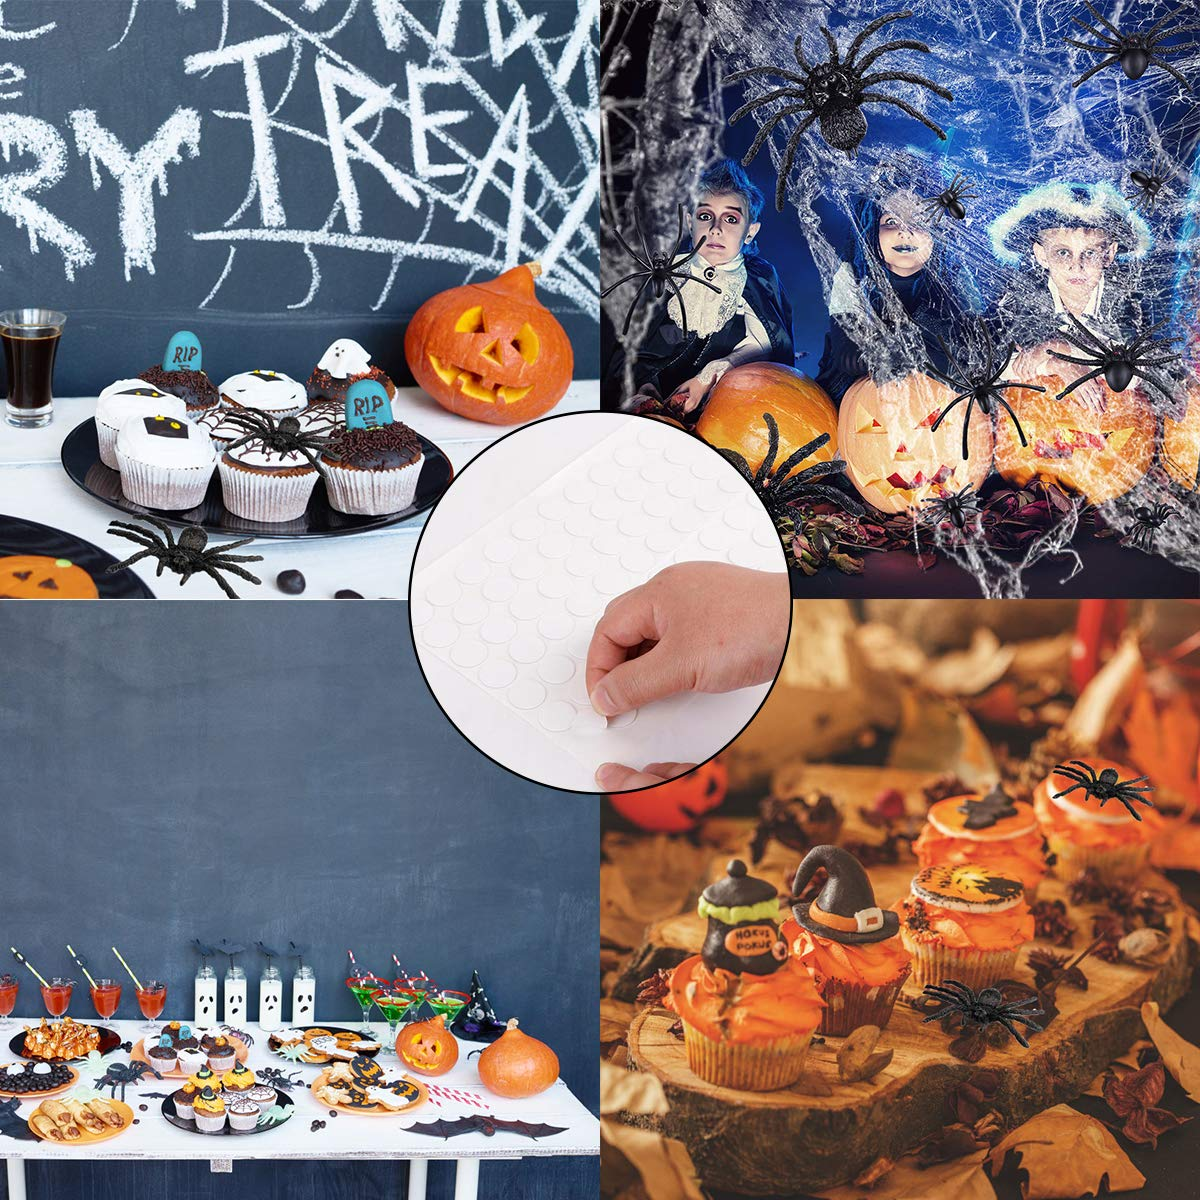 71 PCS Halloween Fake Spider Decorations Set, Halloween Prank Props, 70 pcs Fake Plastic Spiders in Different Sizes and 100 pcs of Glue Easy to Paste to Walls, Tables, Best for Halloween Decorations